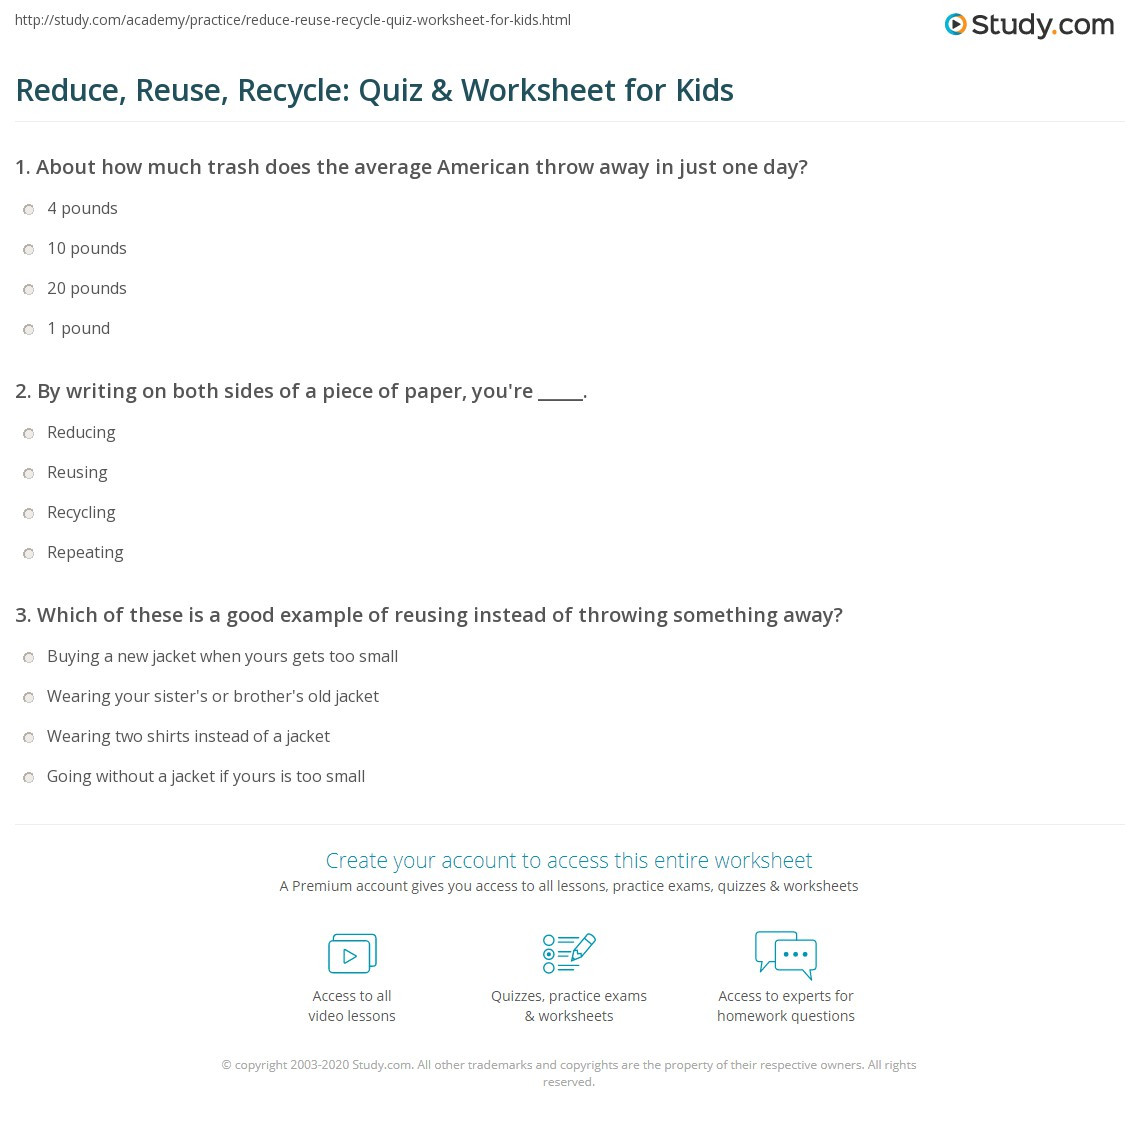 Recycling Worksheets for Preschoolers Reduce Reuse Recycle Quiz & Worksheet for Kids